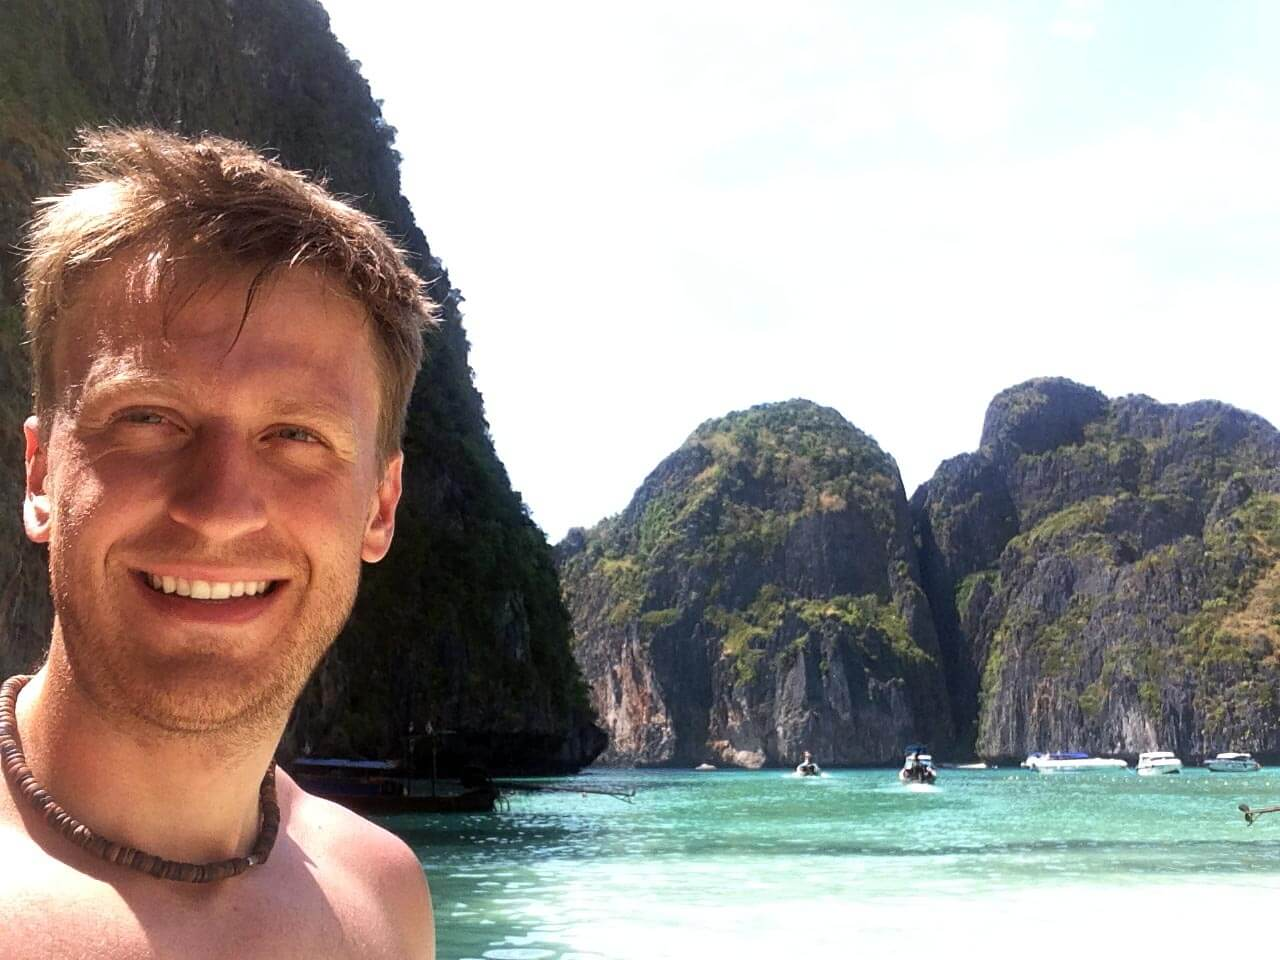 Dustin in Krabi in Thailand, 1 of 221 countries he visited.